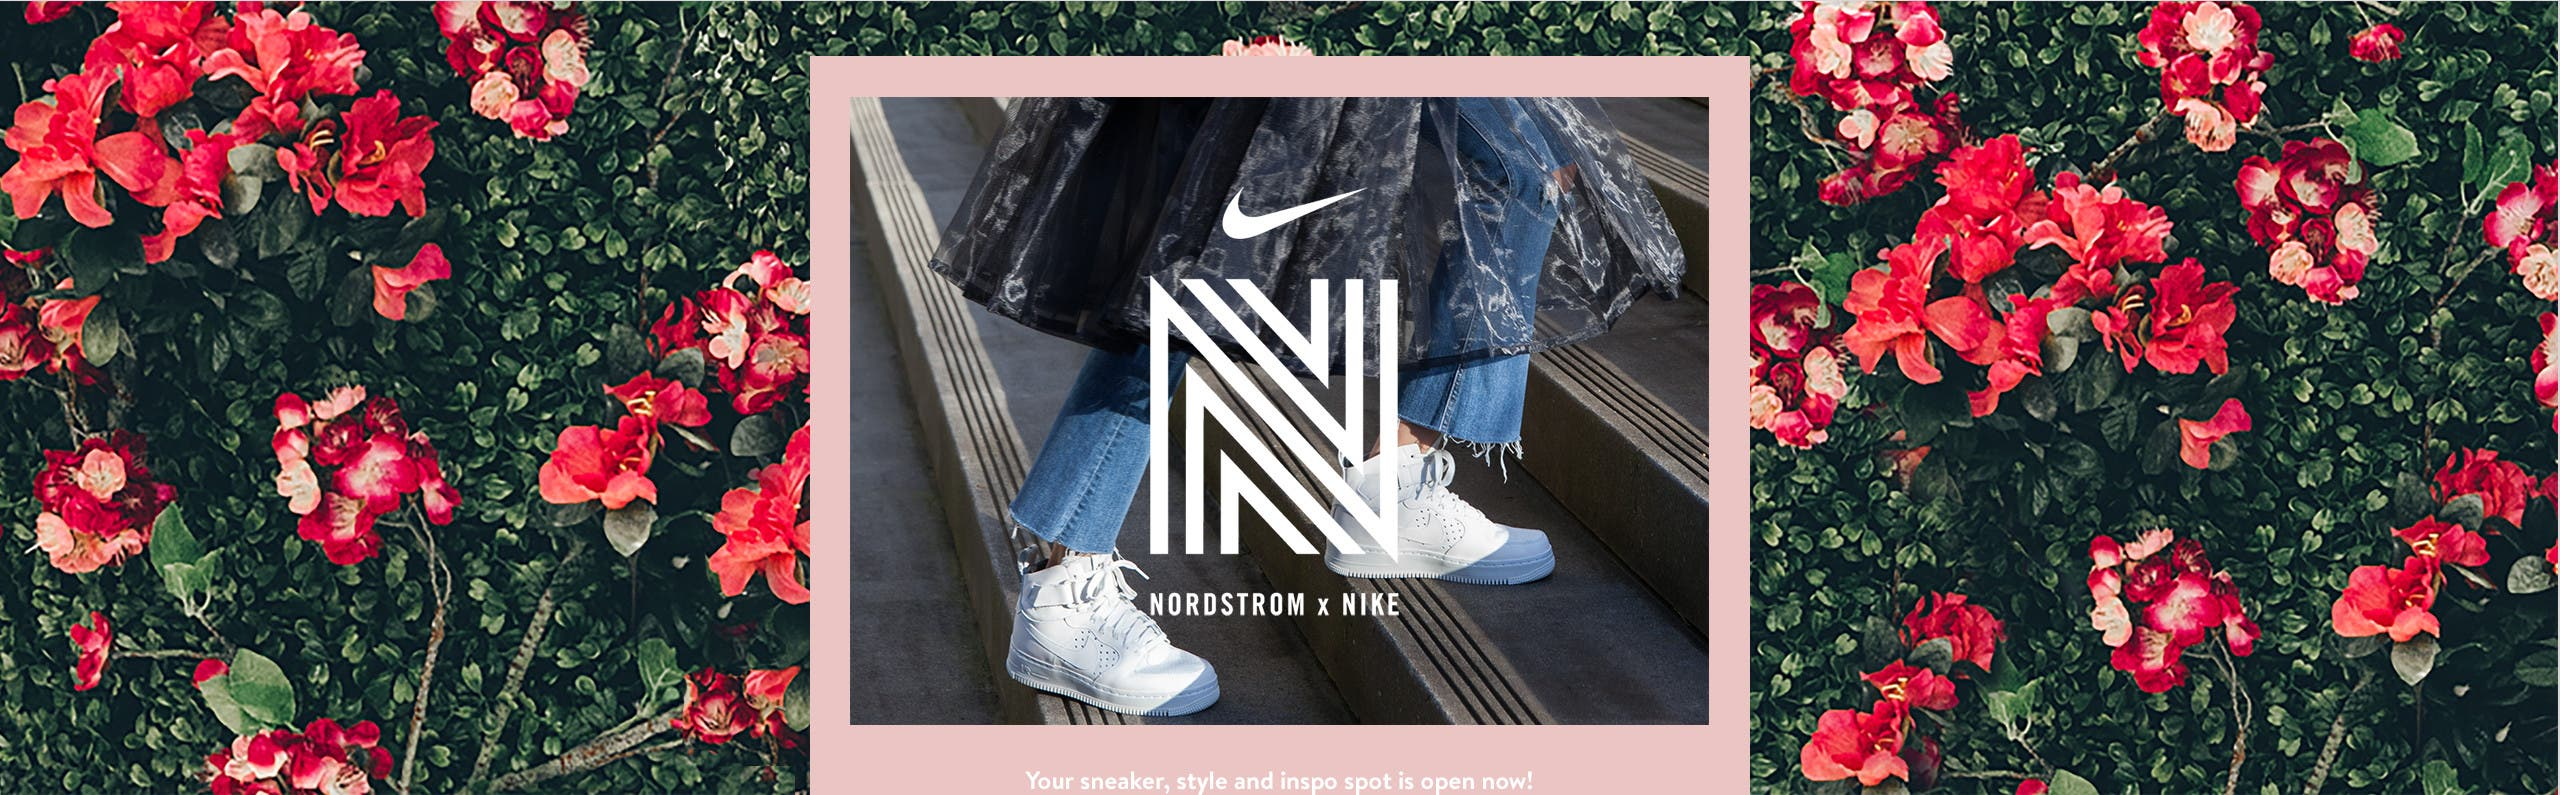 Nordstrom times Nike